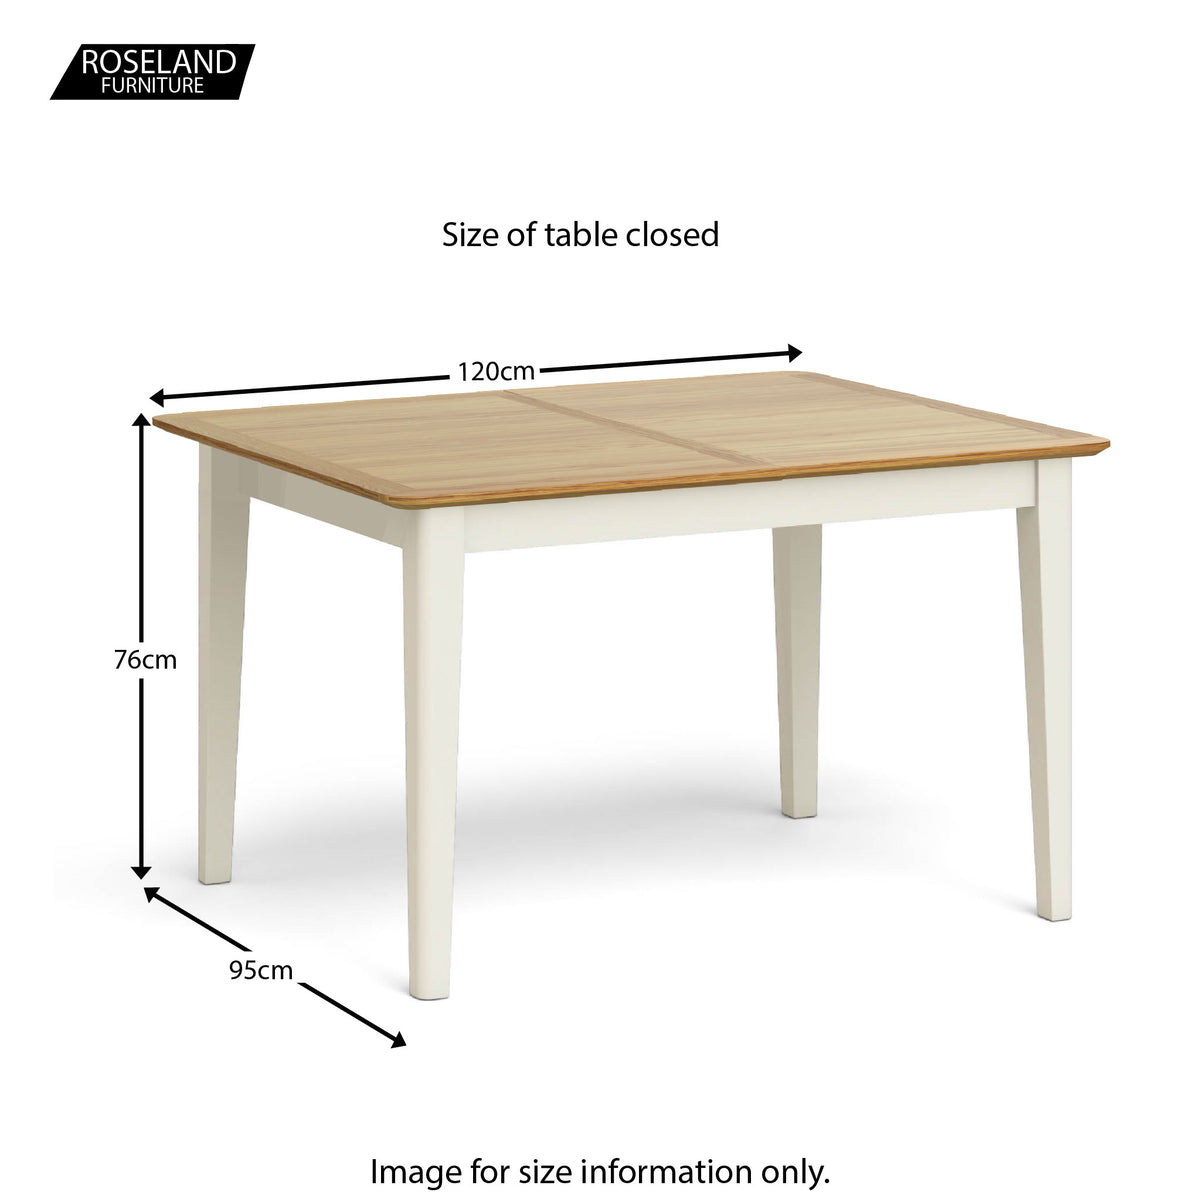 Windsor Cream Compact Extending Table - Size Guide of Table Closed